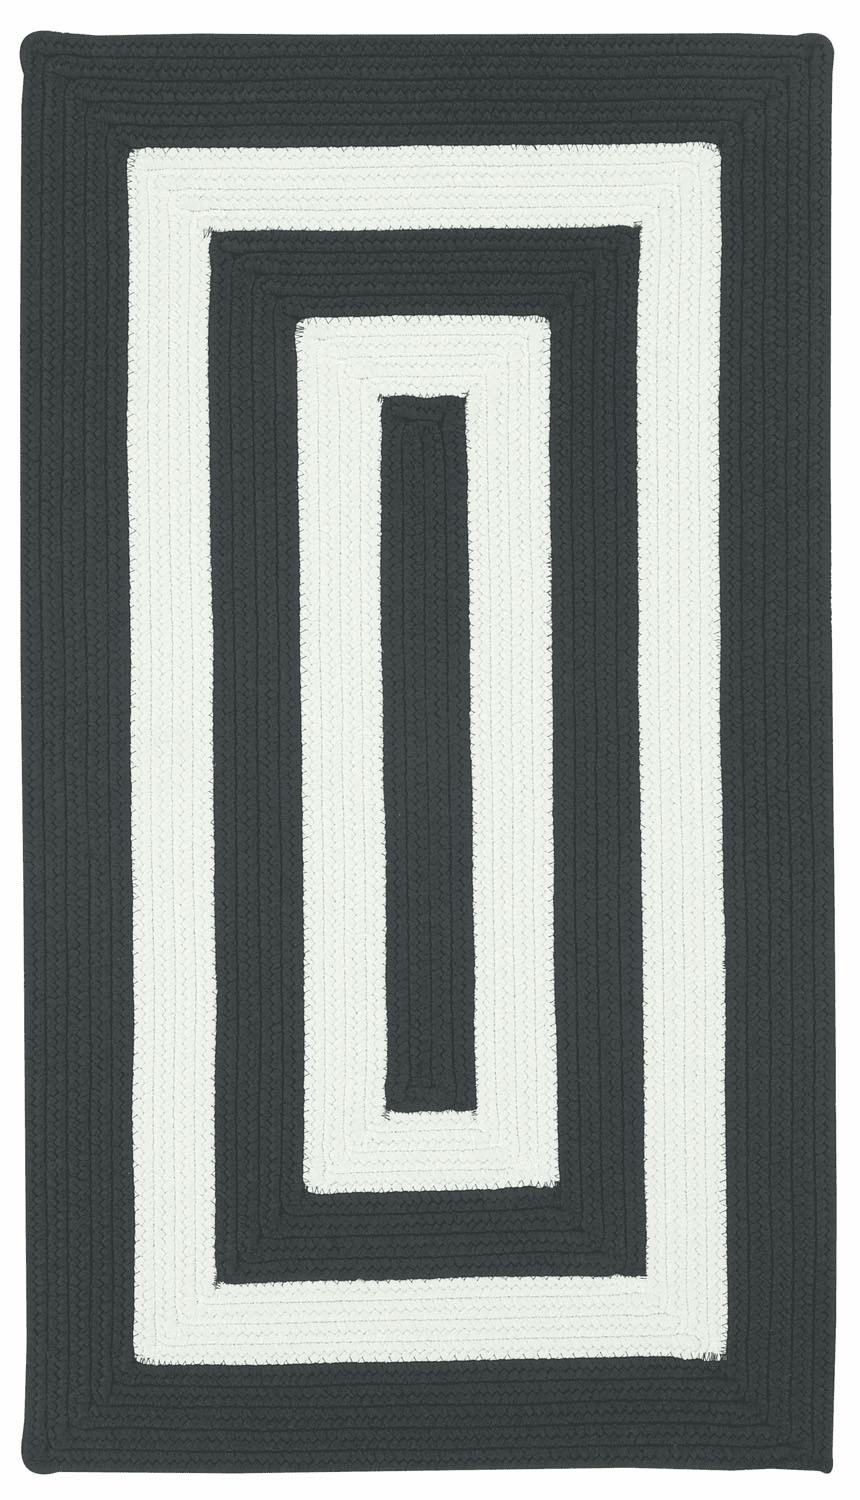 Hand-Braided Black and White Rug